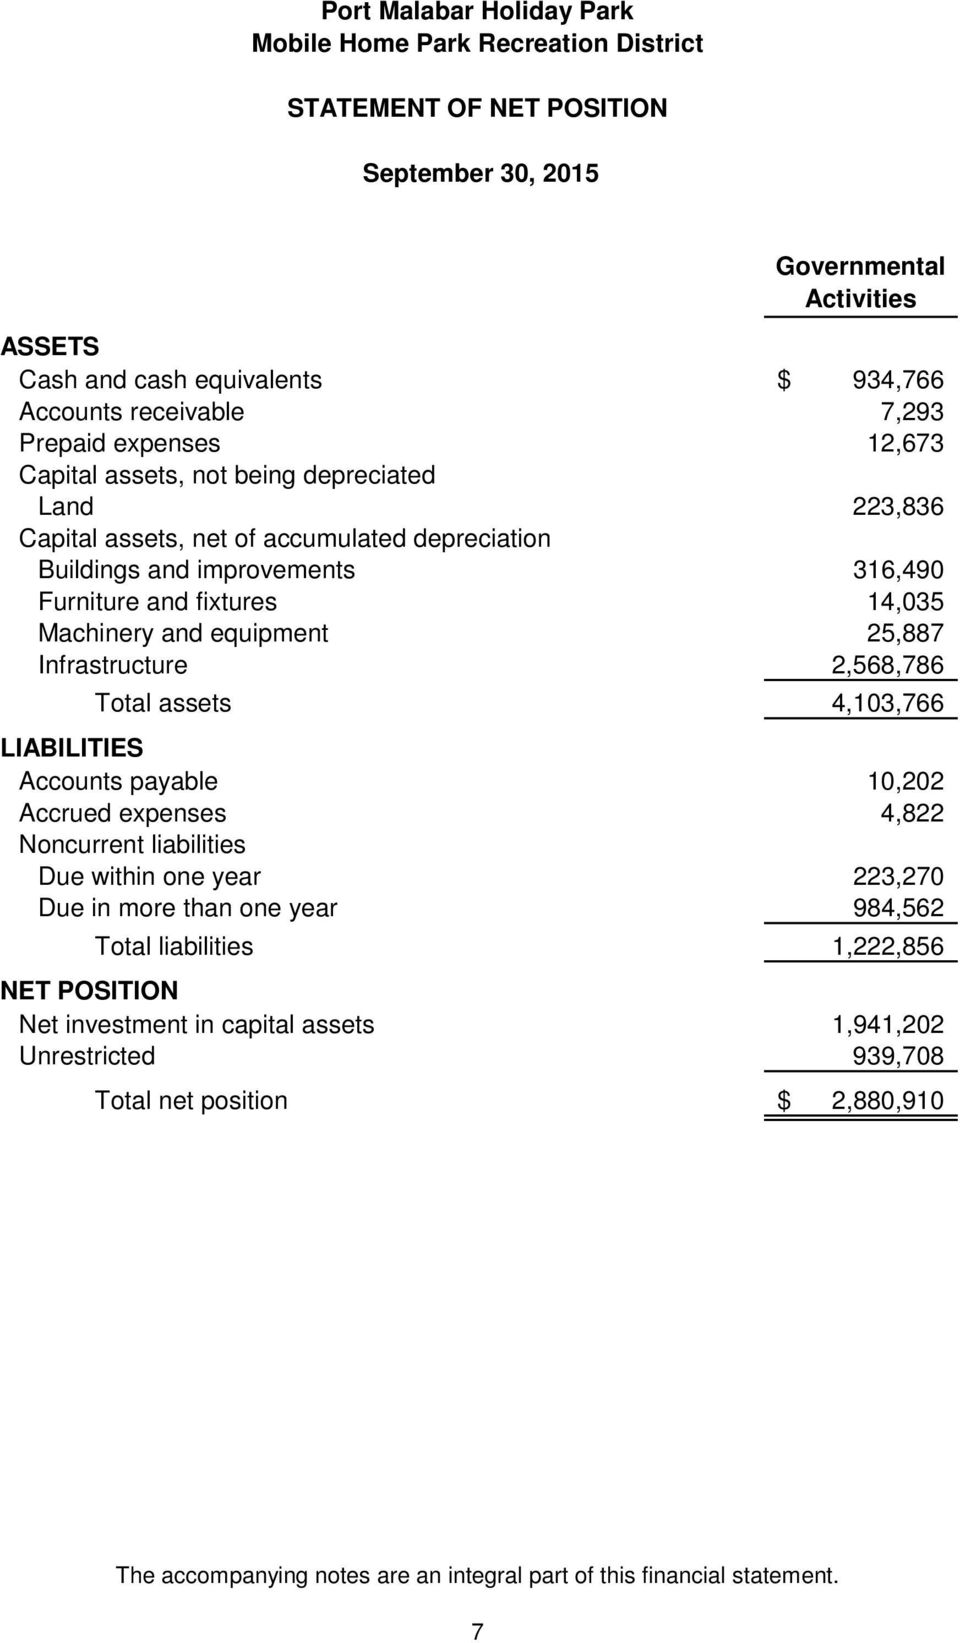 2,568,786 Total assets 4,103,766 LIABILITIES Accounts payable 10,202 Accrued expenses 4,822 Noncurrent liabilities Due within one year 223,270 Due in more than one year 984,562 Total